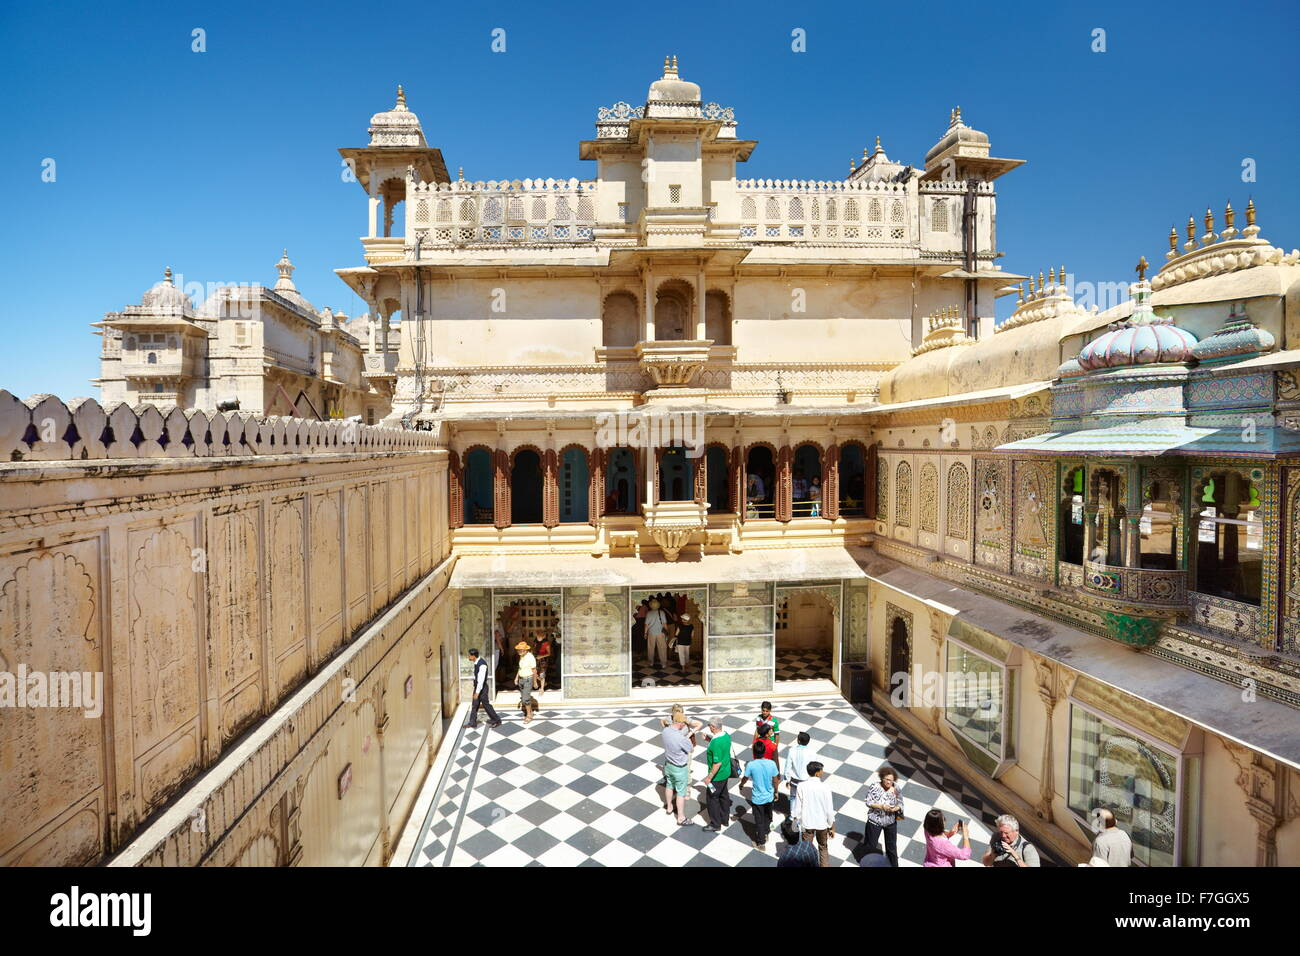 Udaipur - interior courtyard in the Udaipur City Palace, Udaipur, Rajasthan, India - Stock Image